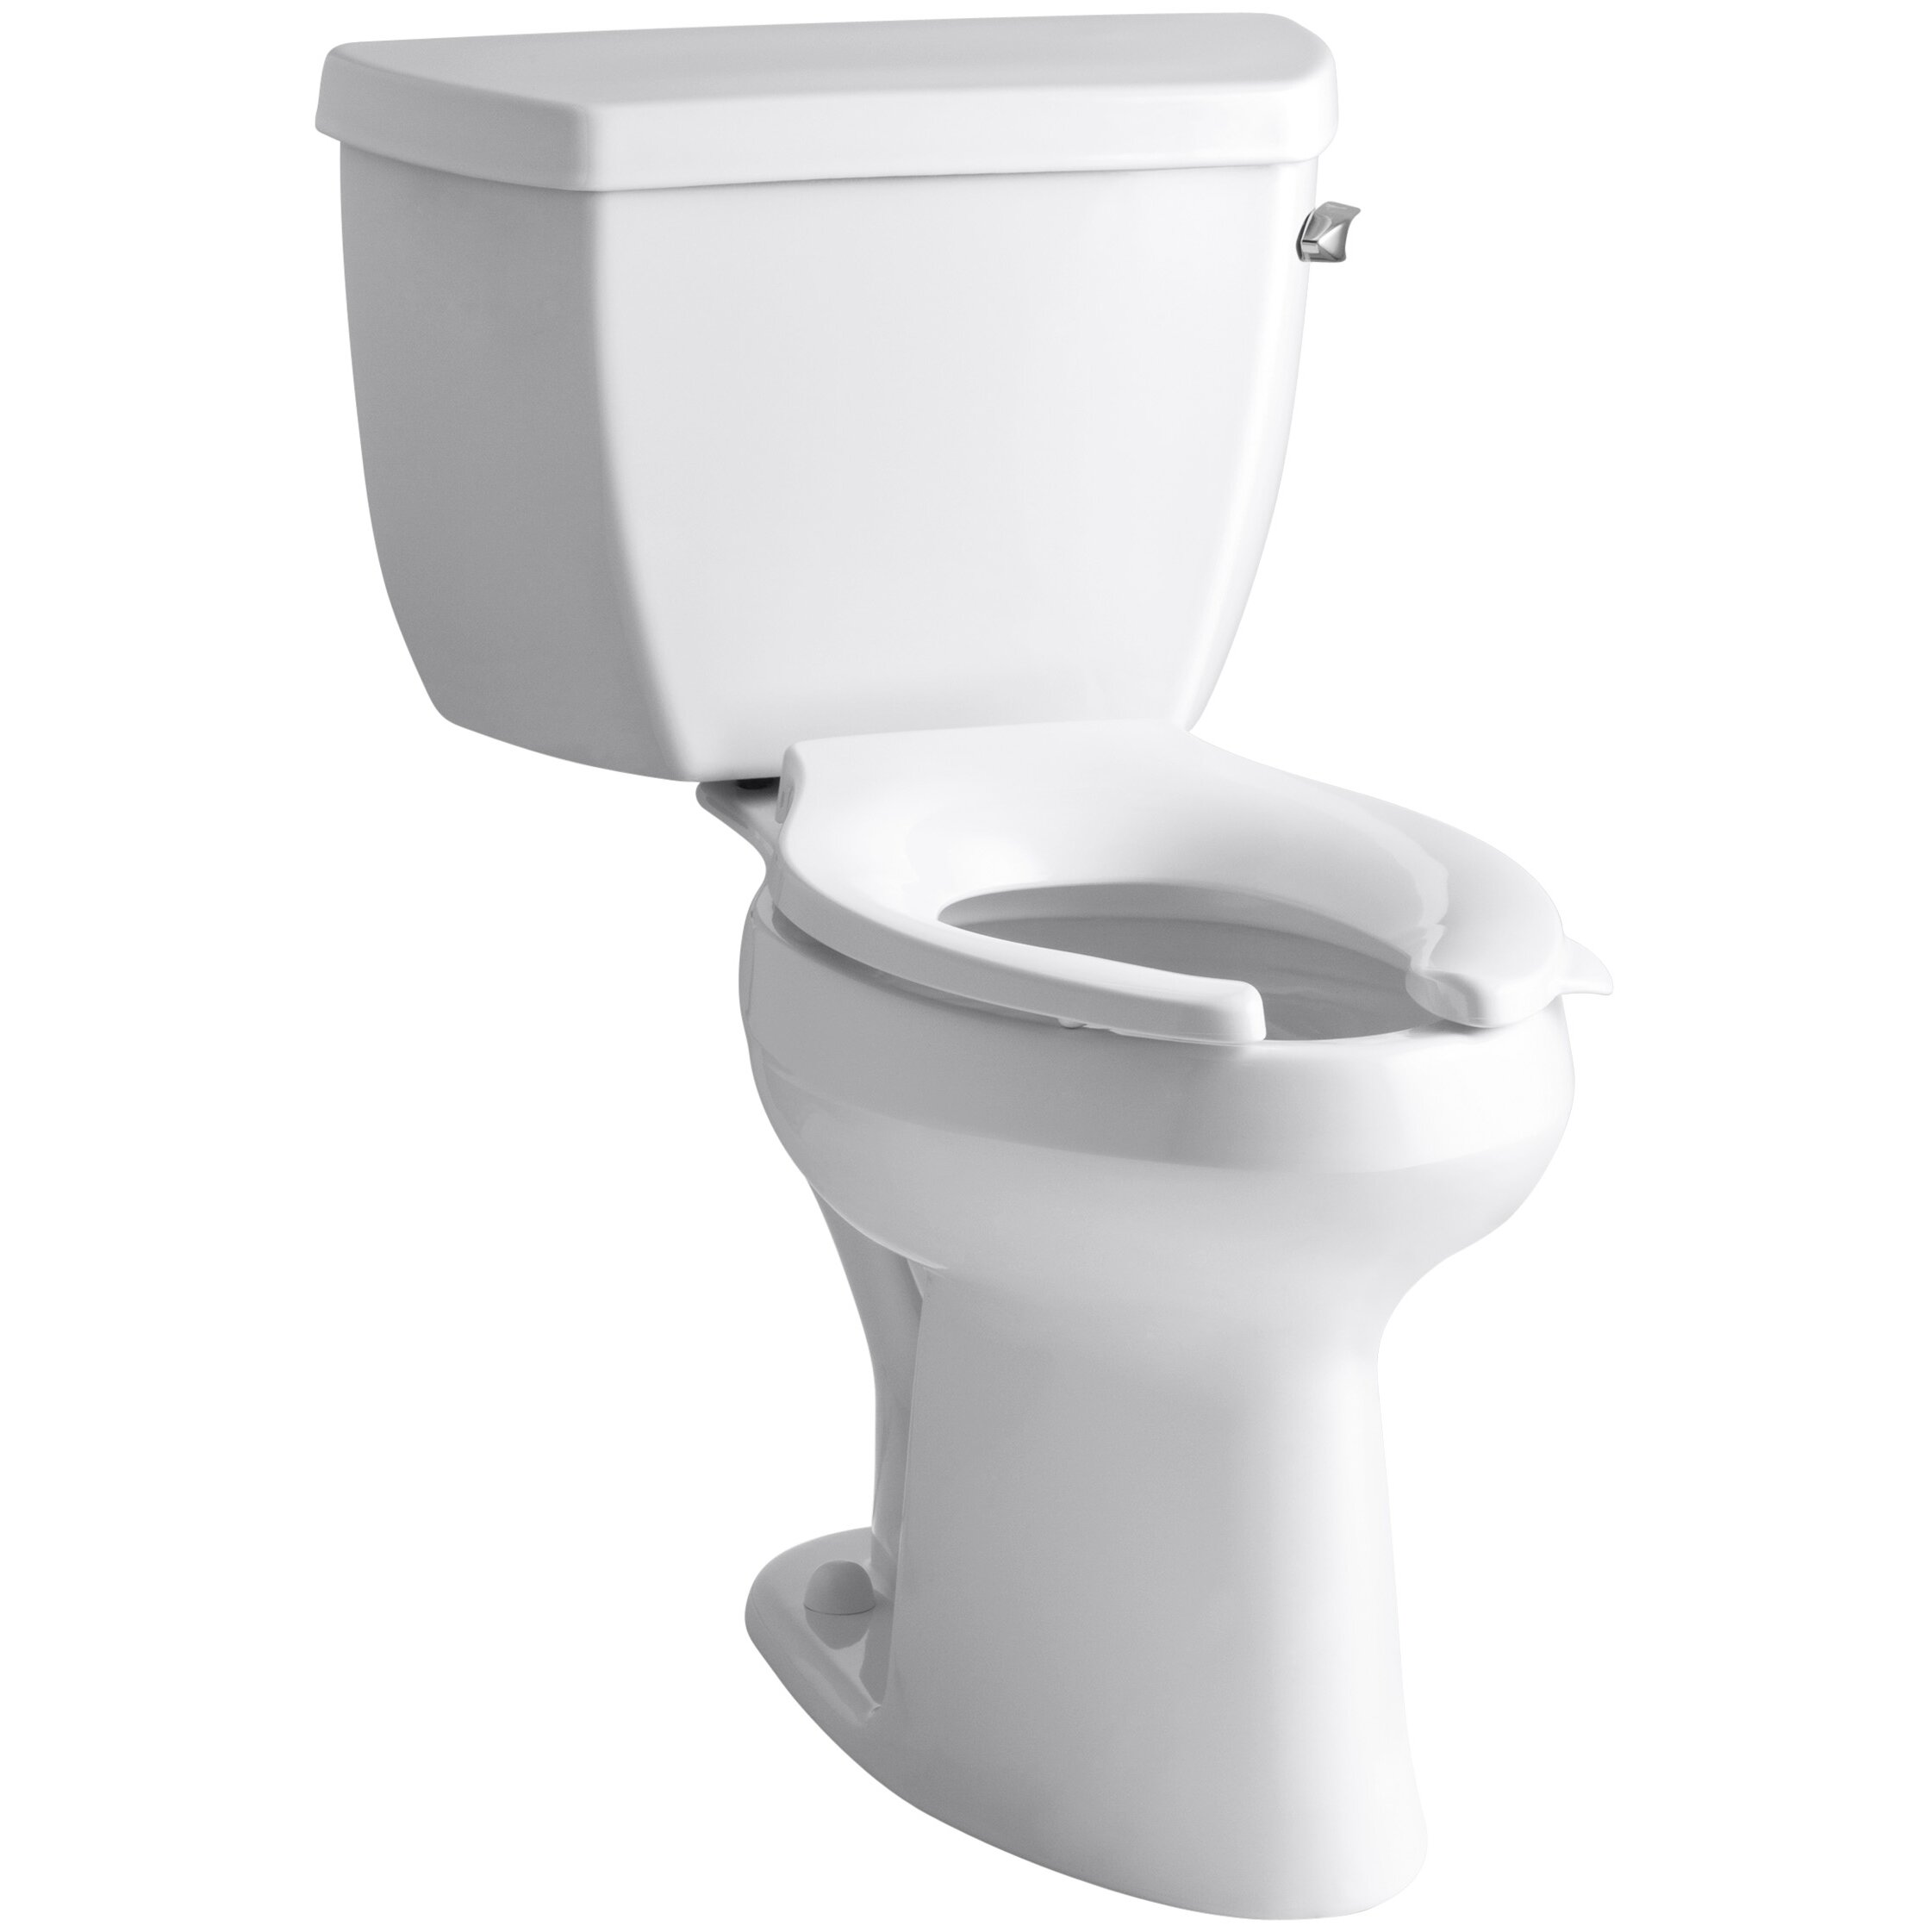 Toilet 10 inch rough in - Highline Classic Comfort Height Two Piece Elongated 1 6 Gpf Toilet With Pressure Lite Flush Techology